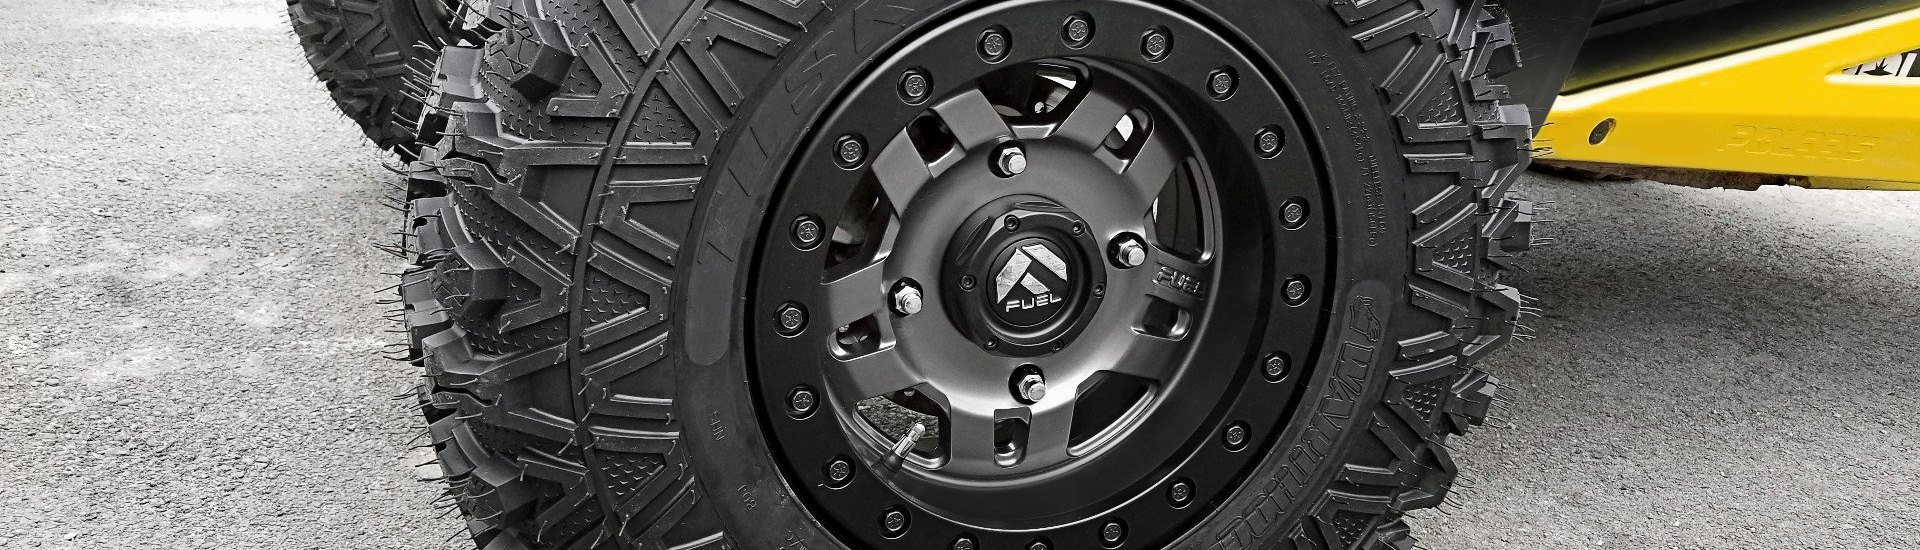 Polaris Powersports Wheels & Tires - POWERSPORTSiD com